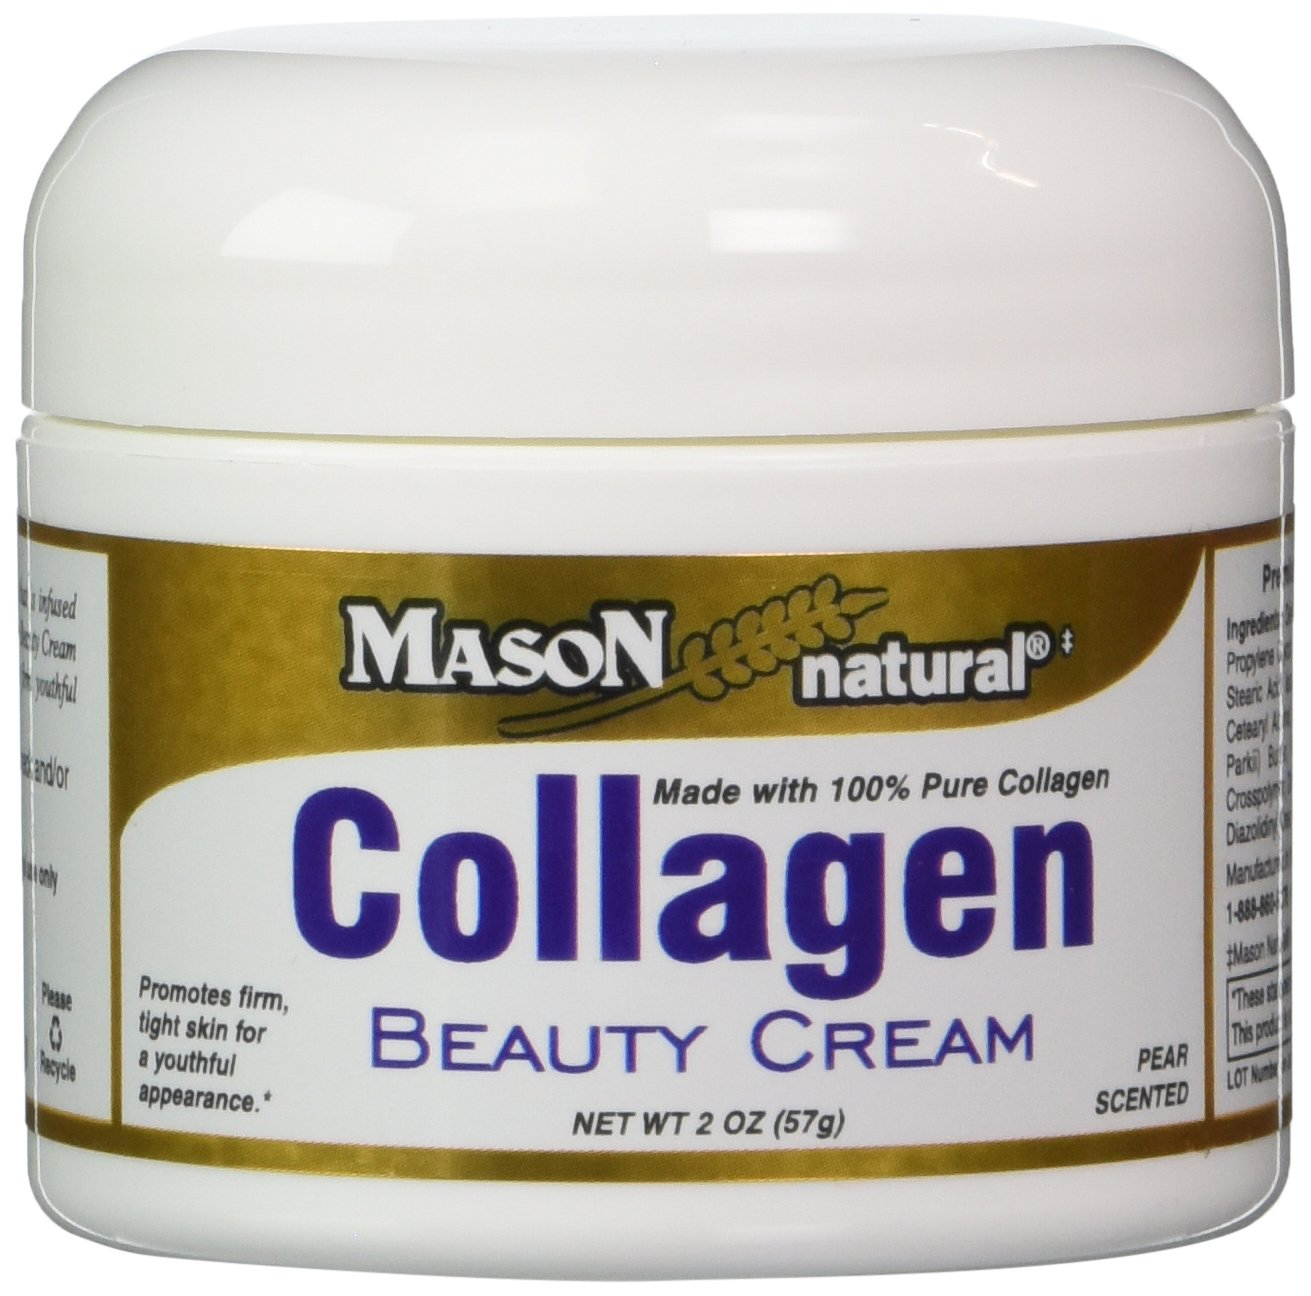 Amazon.com: Mason Natural Collagen Beauty Cream Made with 100% Pure Collagen - 2 oz: Health & Personal Care